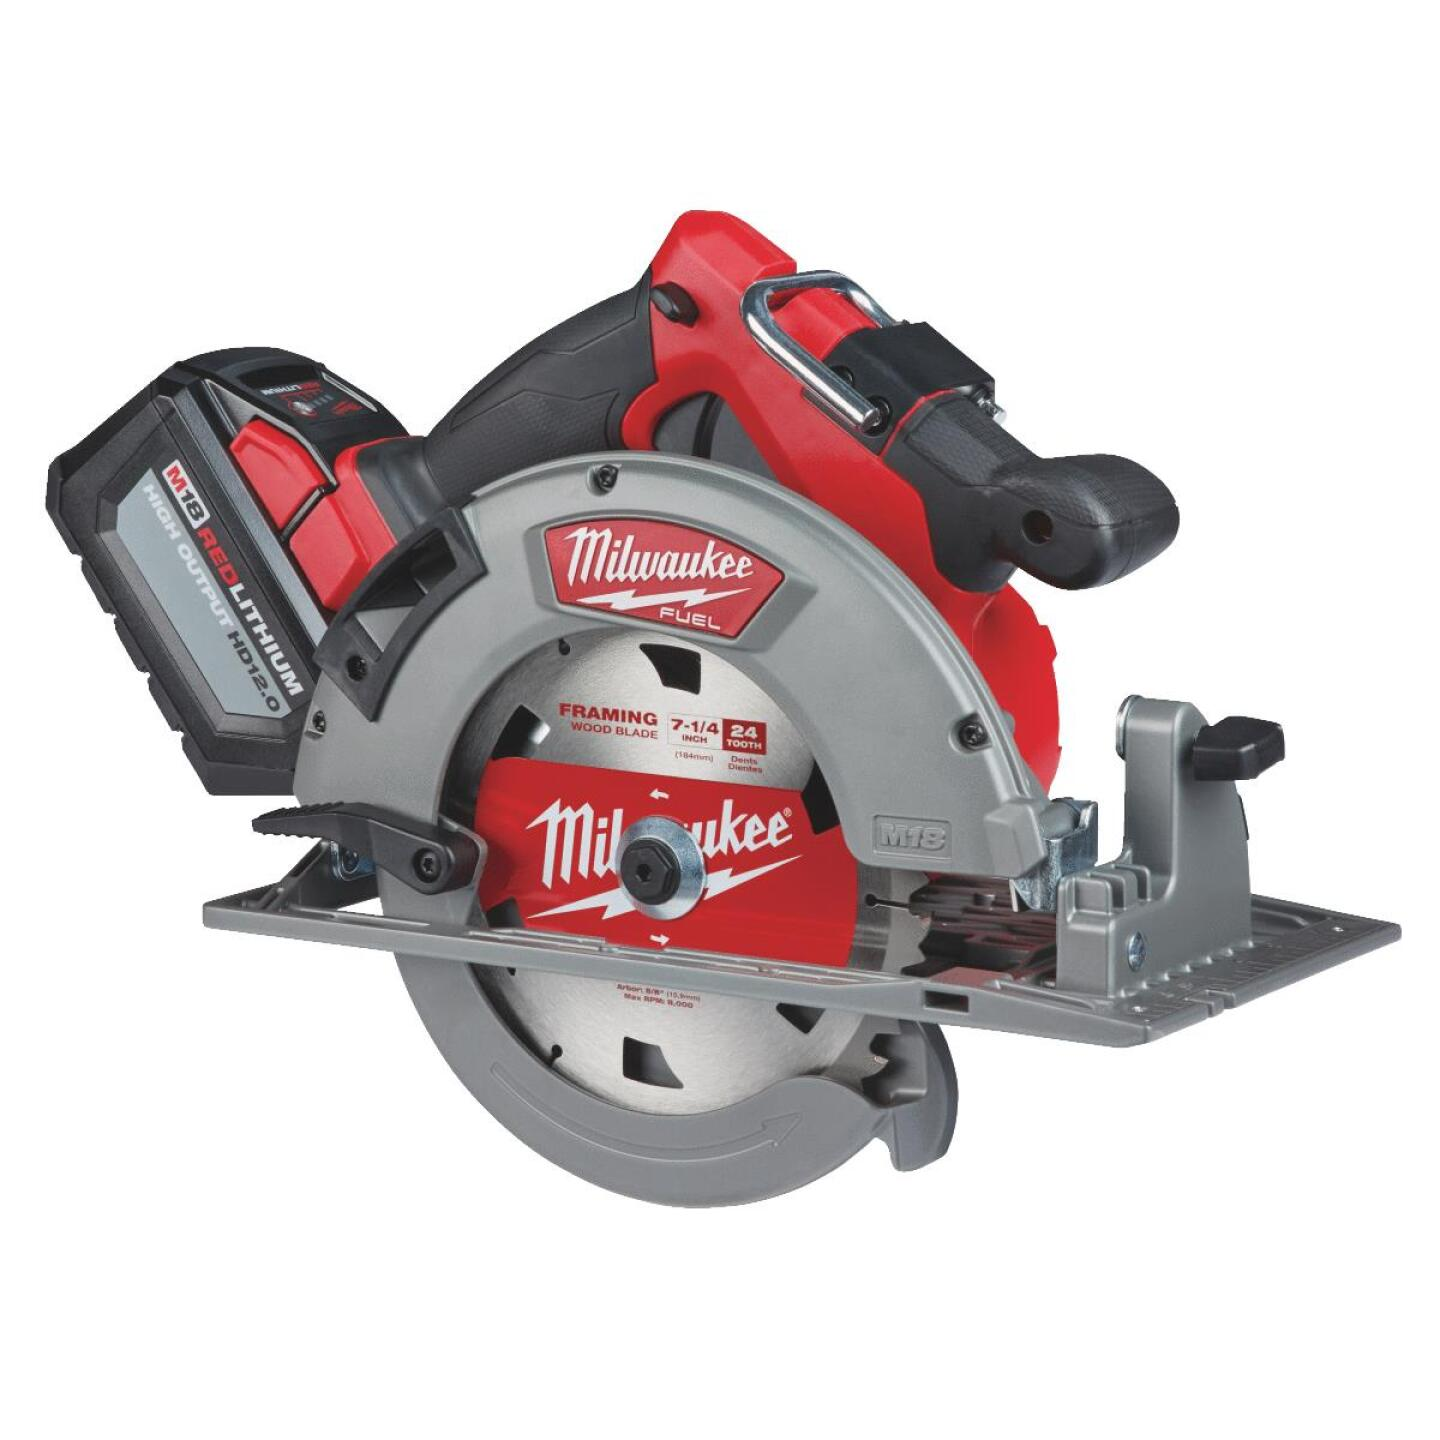 Milwaukee M18 FUEL 18 Volt Lithium-Ion Brushless 7-1/4 In. Cordless Circular Saw Kit Image 4